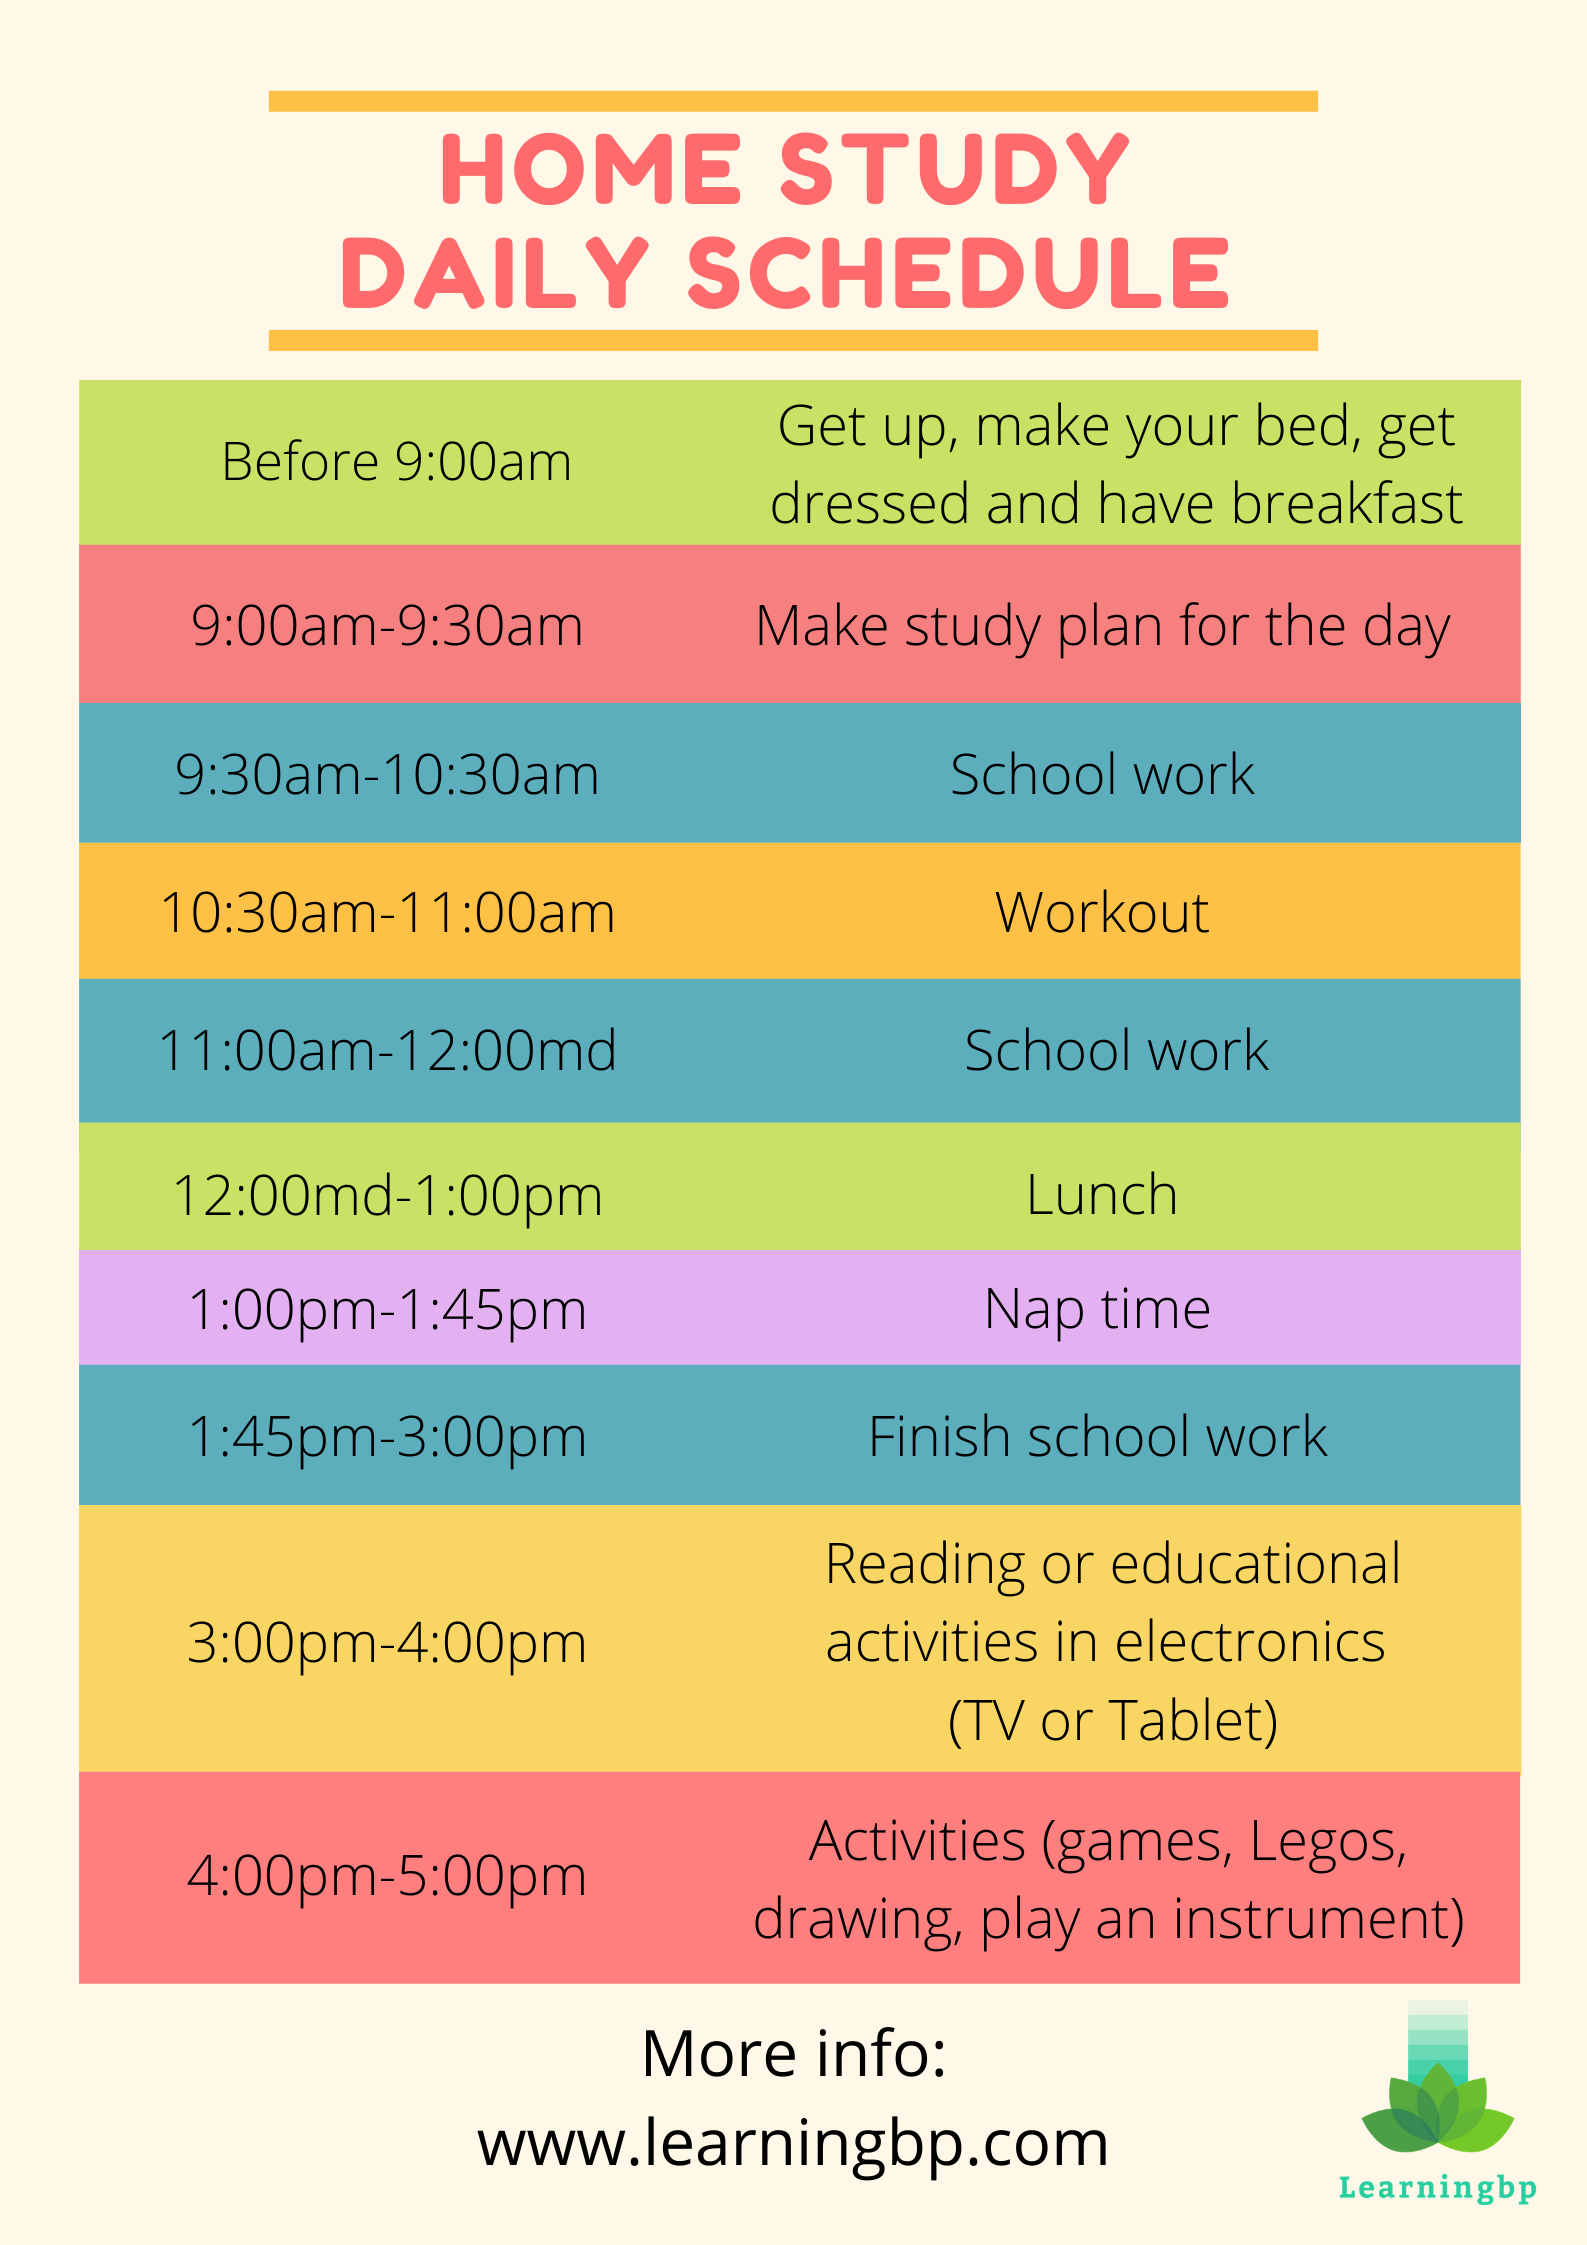 Home Study Daily Schedule In 2020 School Schedule Online School Organization School Routines